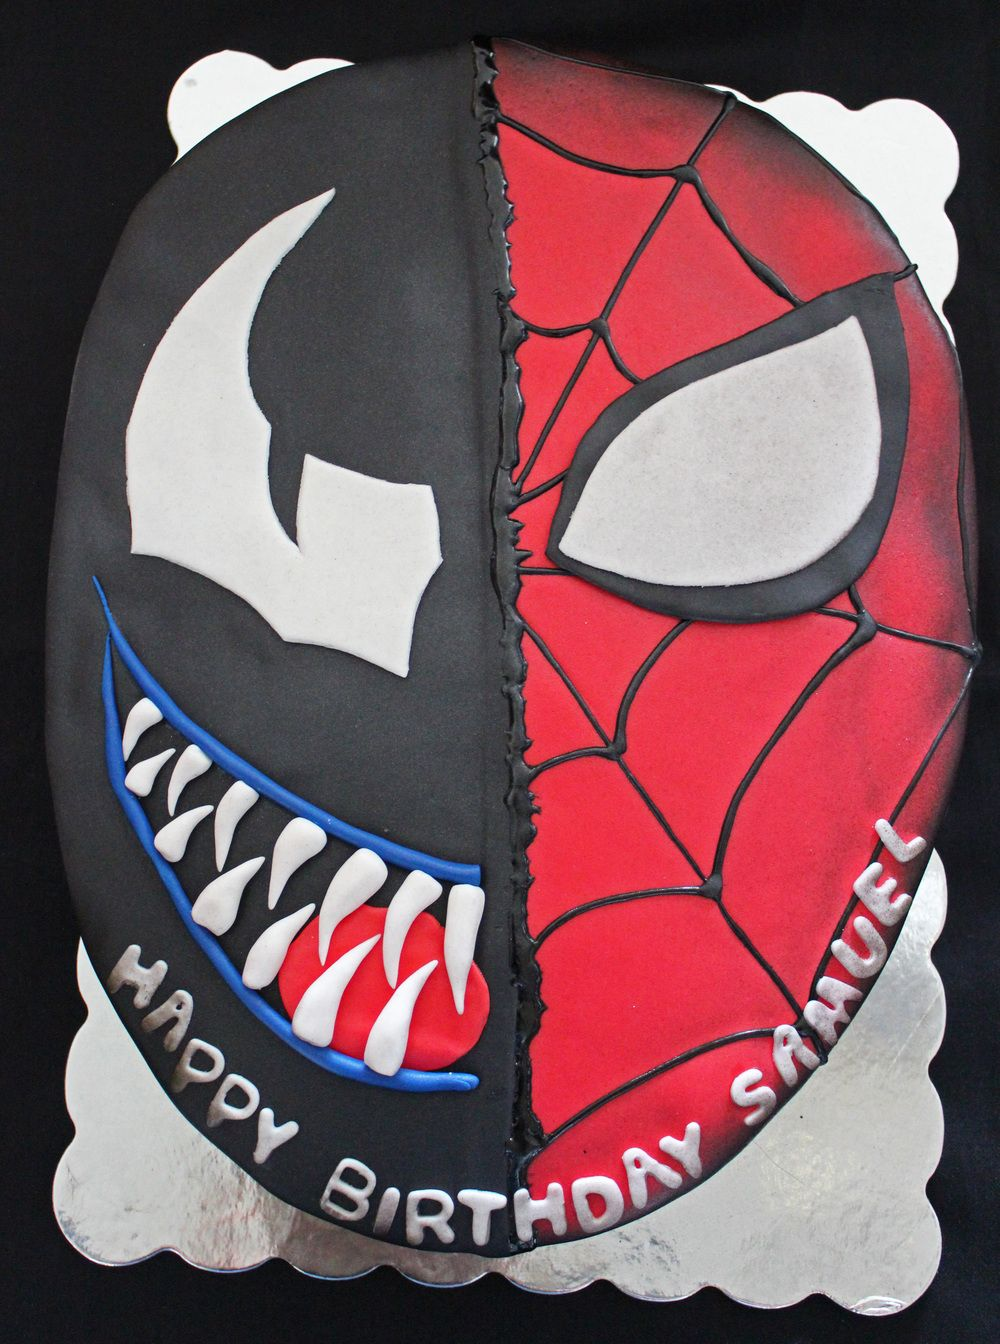 Black spiderman cakes - photo#33